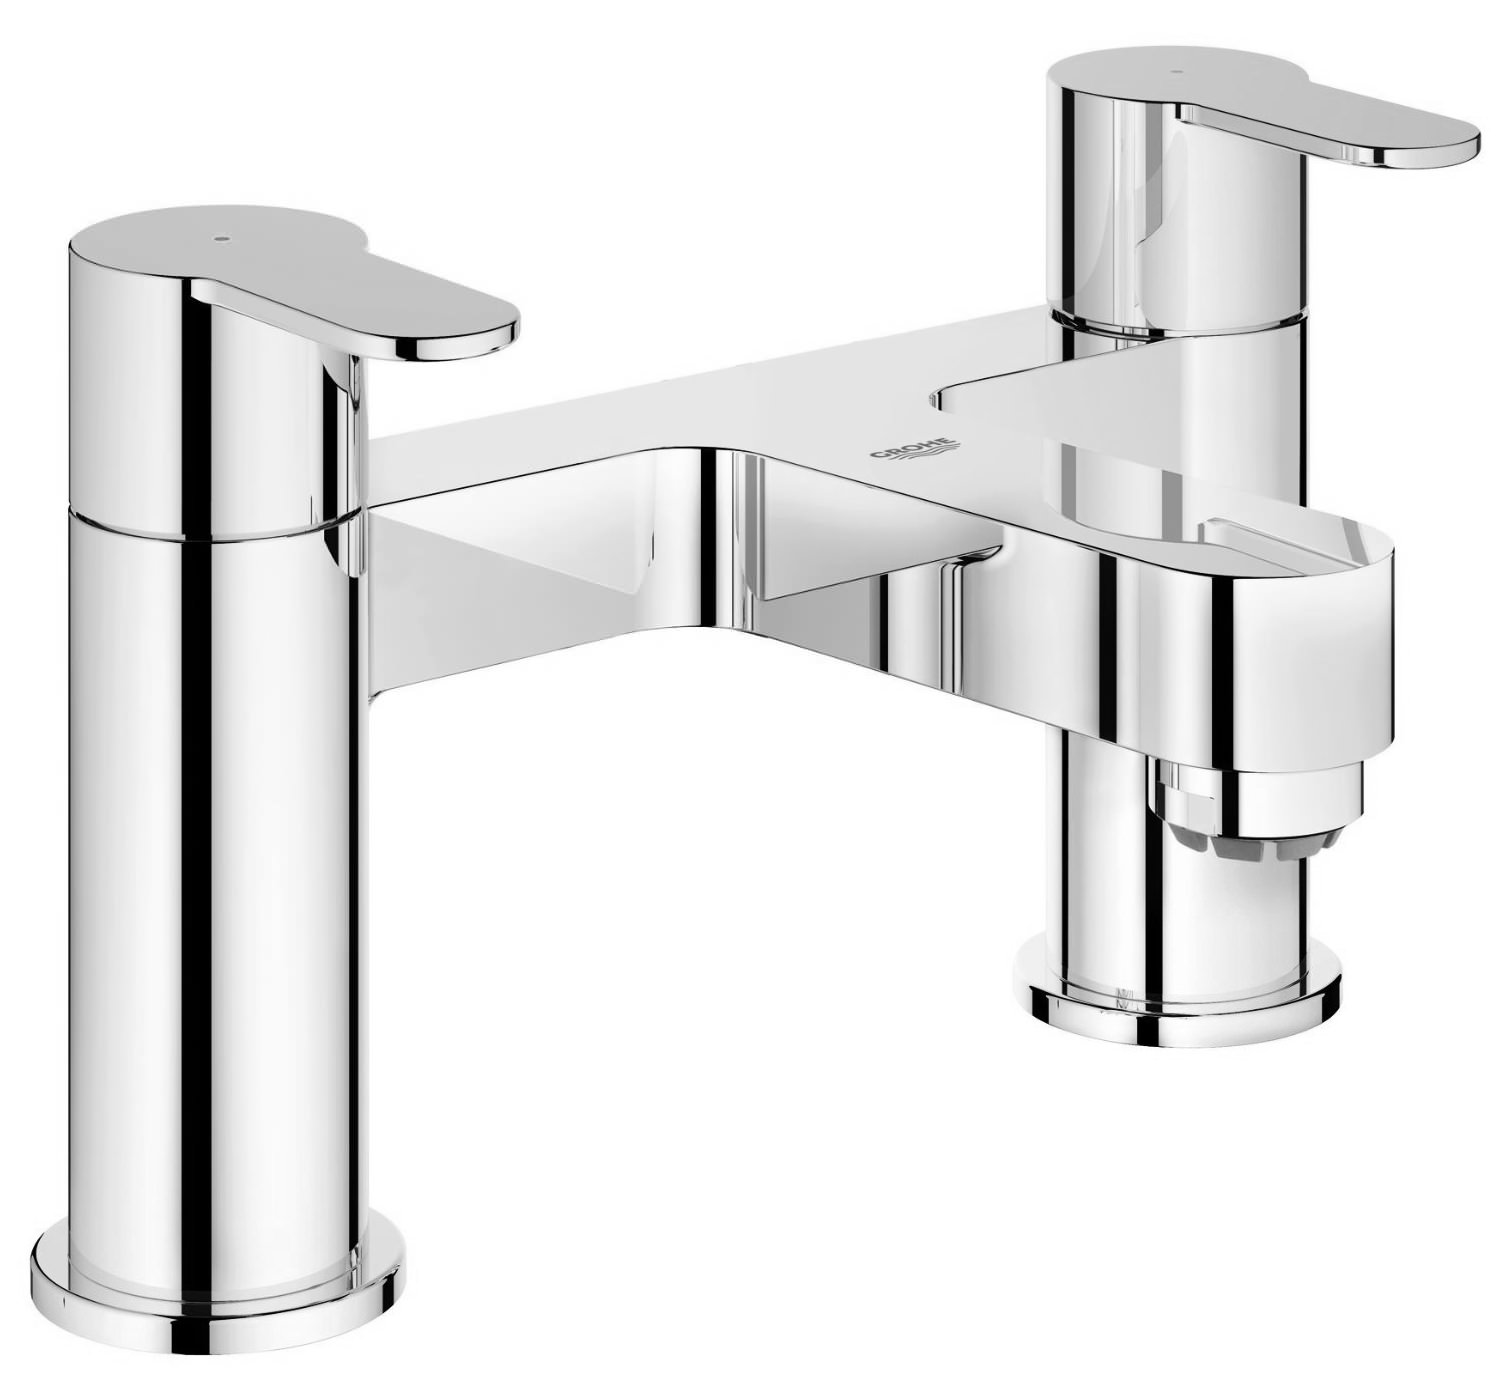 grohe eurostyle cosmo deck mounted bath filler tap 25100002. Black Bedroom Furniture Sets. Home Design Ideas